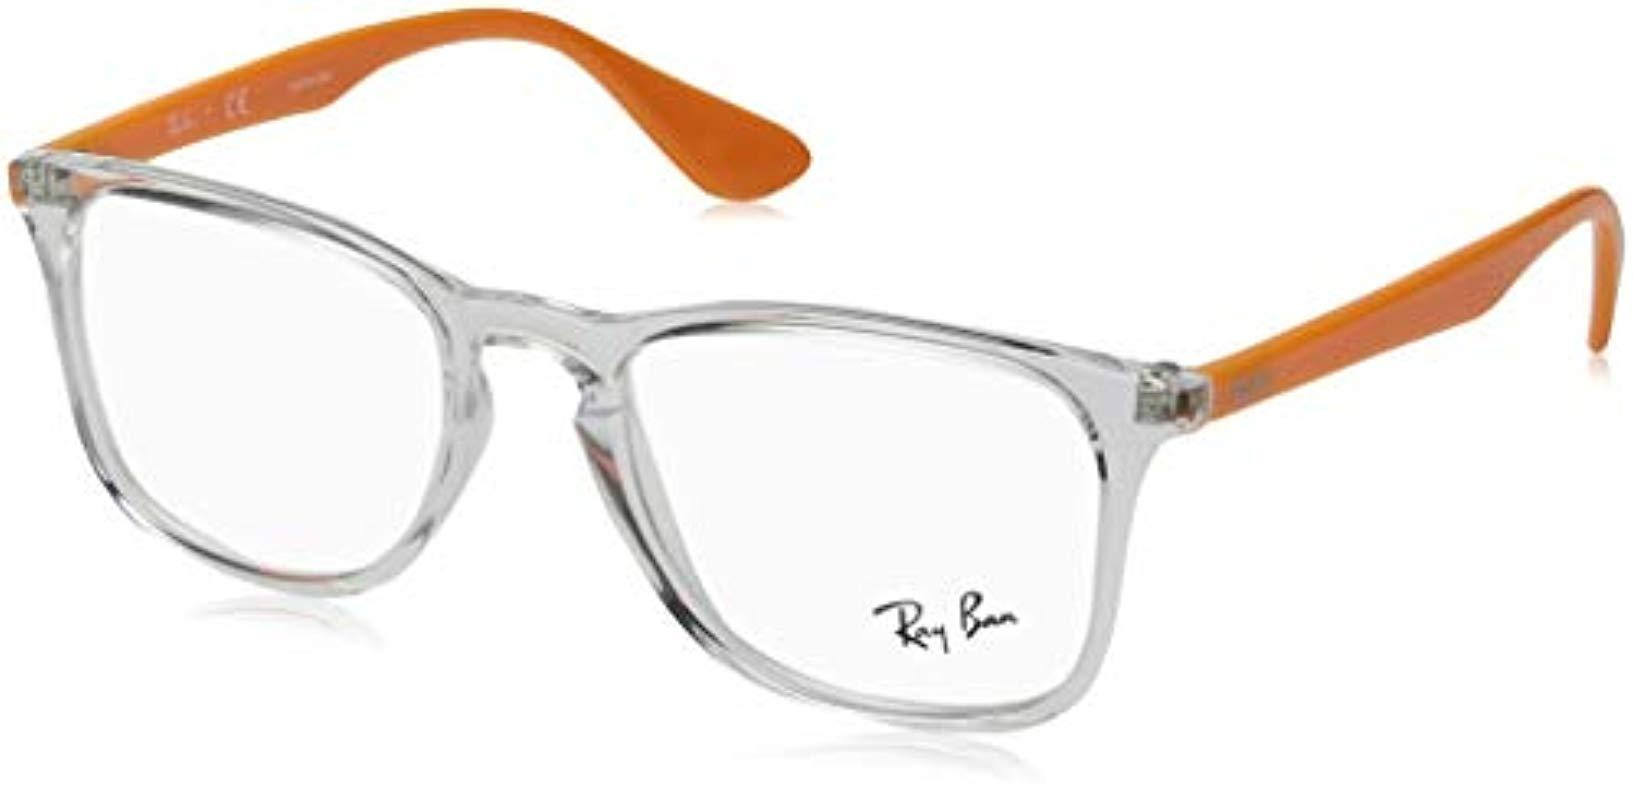 be53eb8044 Ray-Ban 0rx 7074 5736 50 Optical Frames